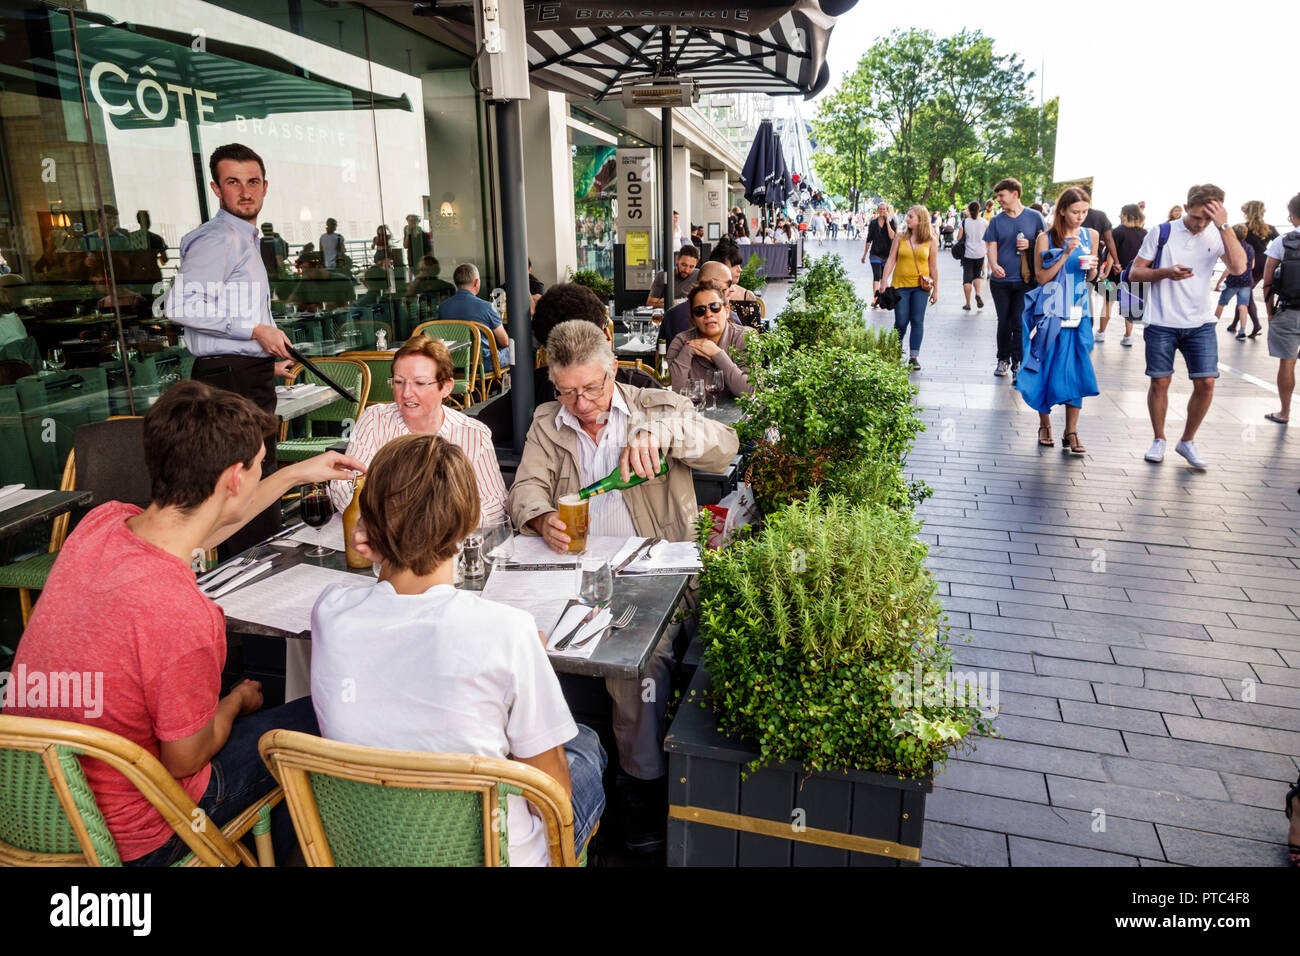 London England United Kingdom Great Britain Lambeth South Bank Southbank Centre center Festival Terrace Cote restaurant French cuisine brasserie alfre - Stock Image